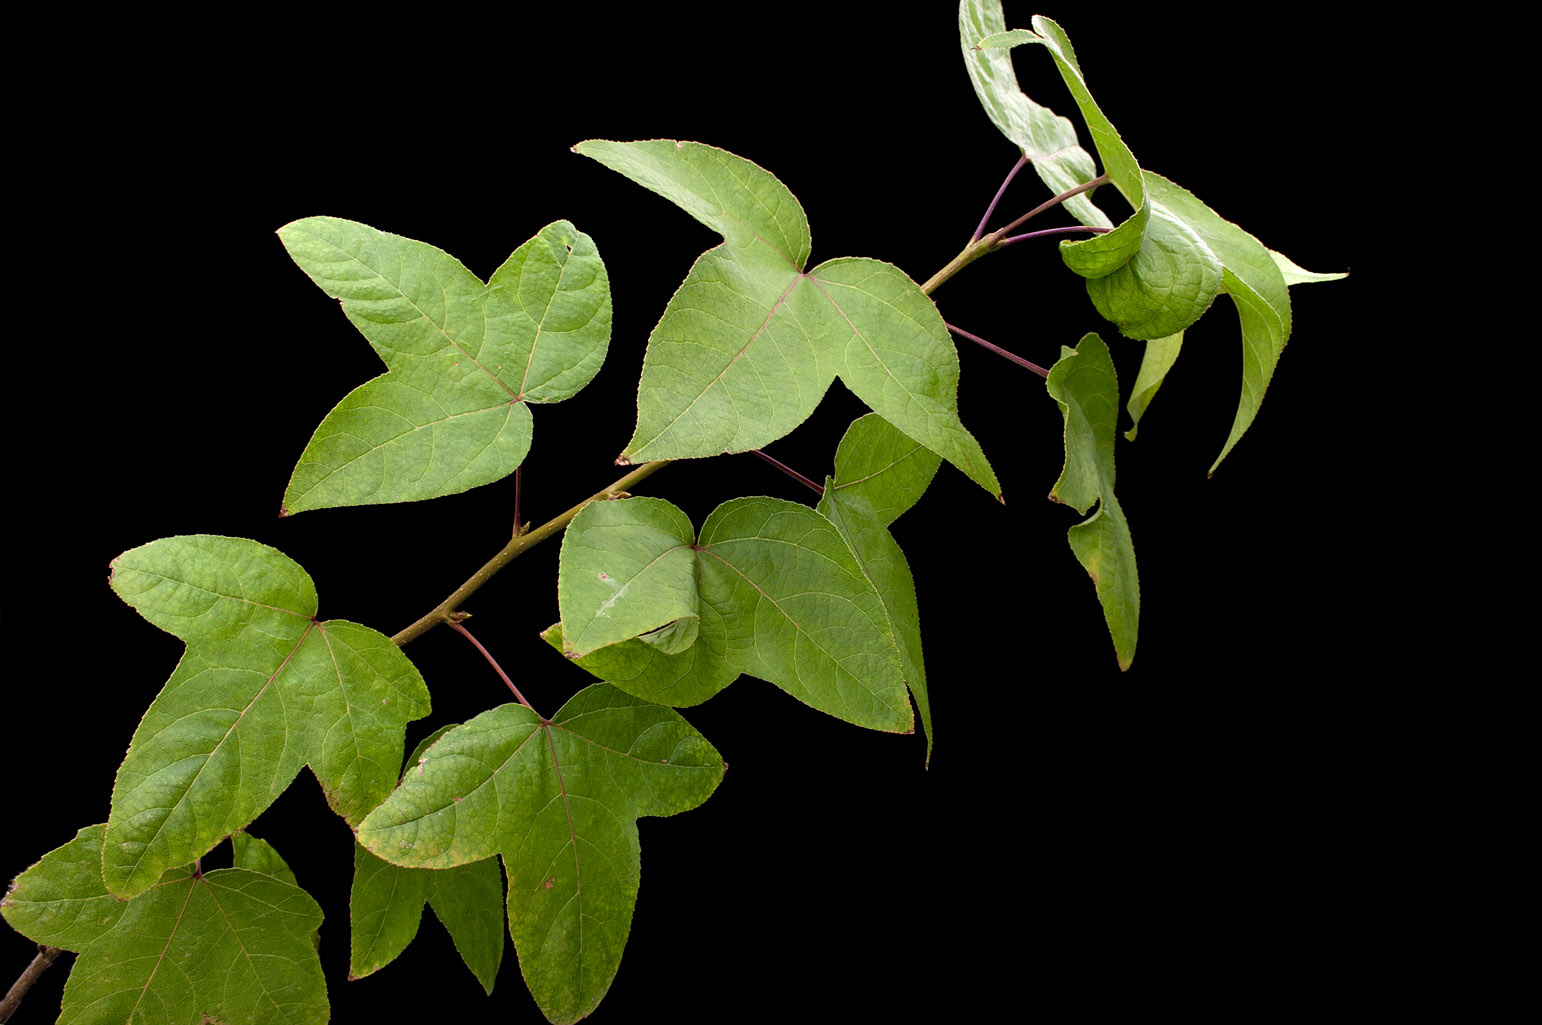 Branch with alternate, palmately lobed leaves with 3 triangular-ovate lobes